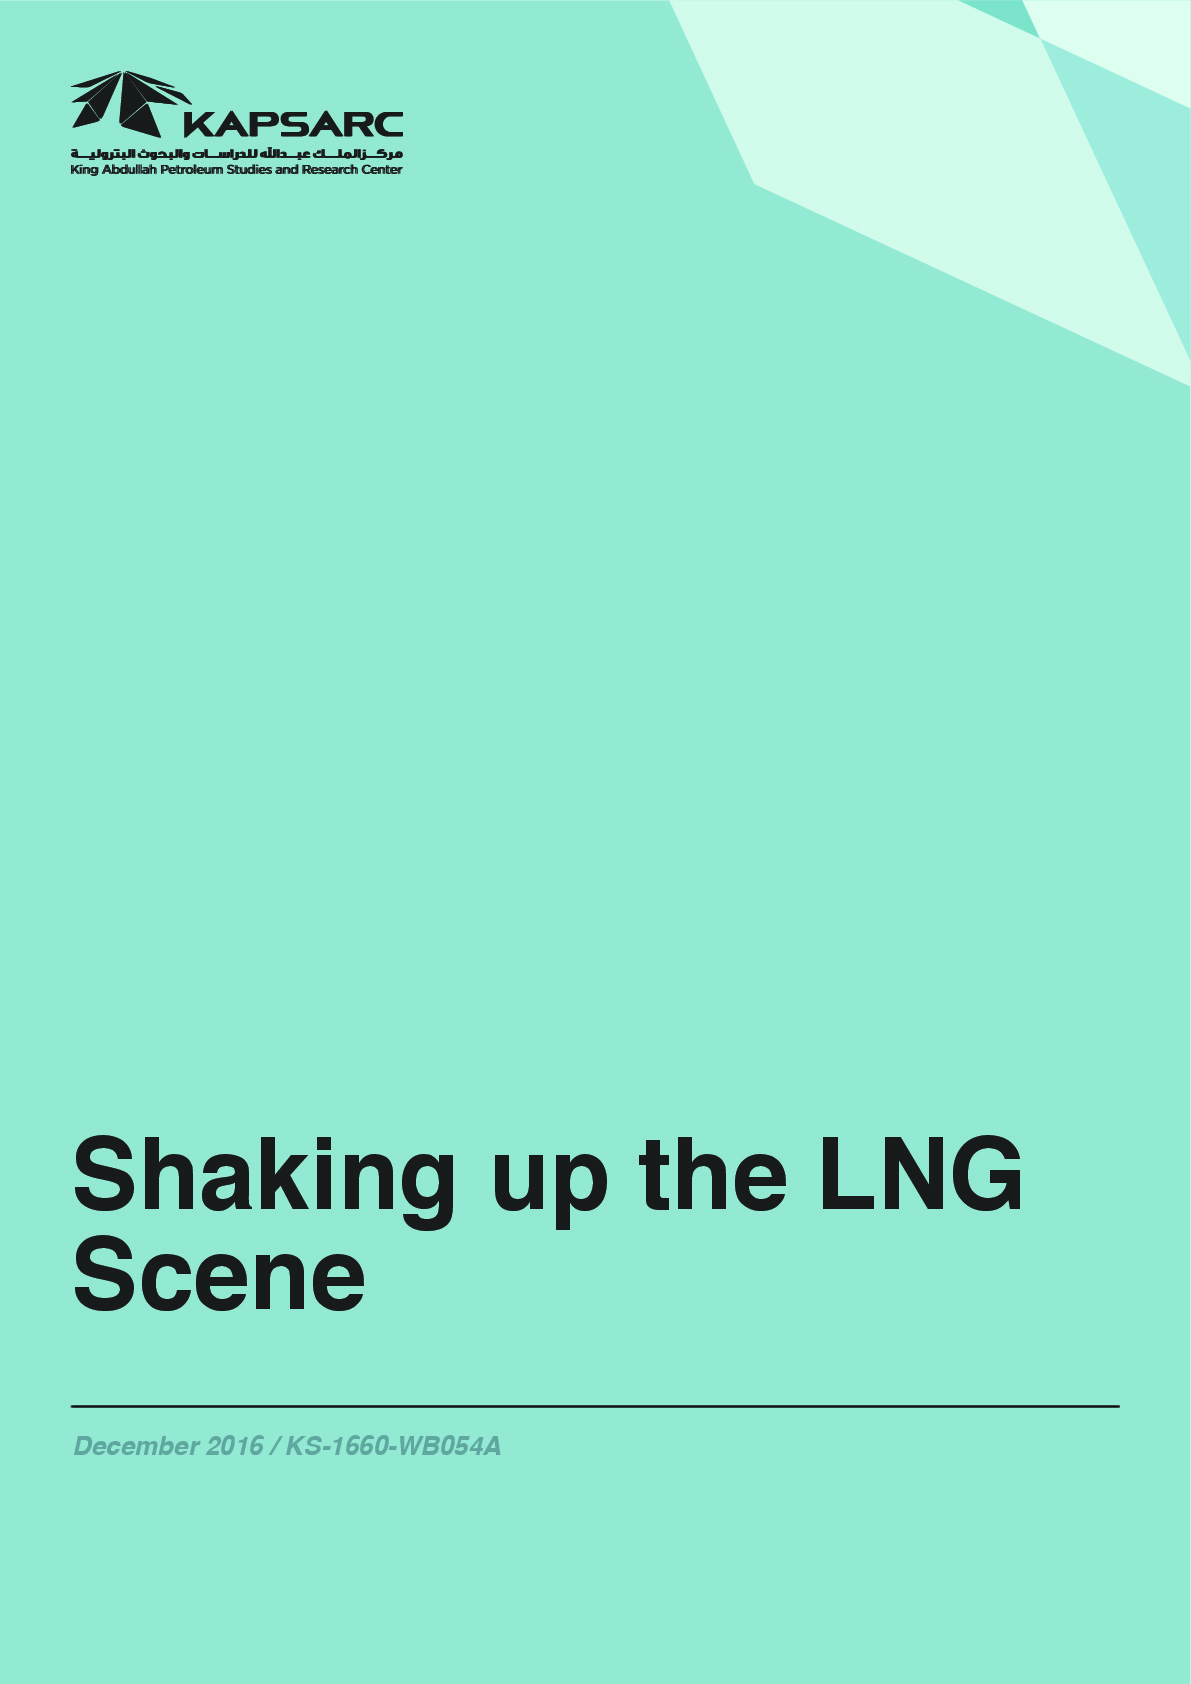 Shaking up the LNG Scene